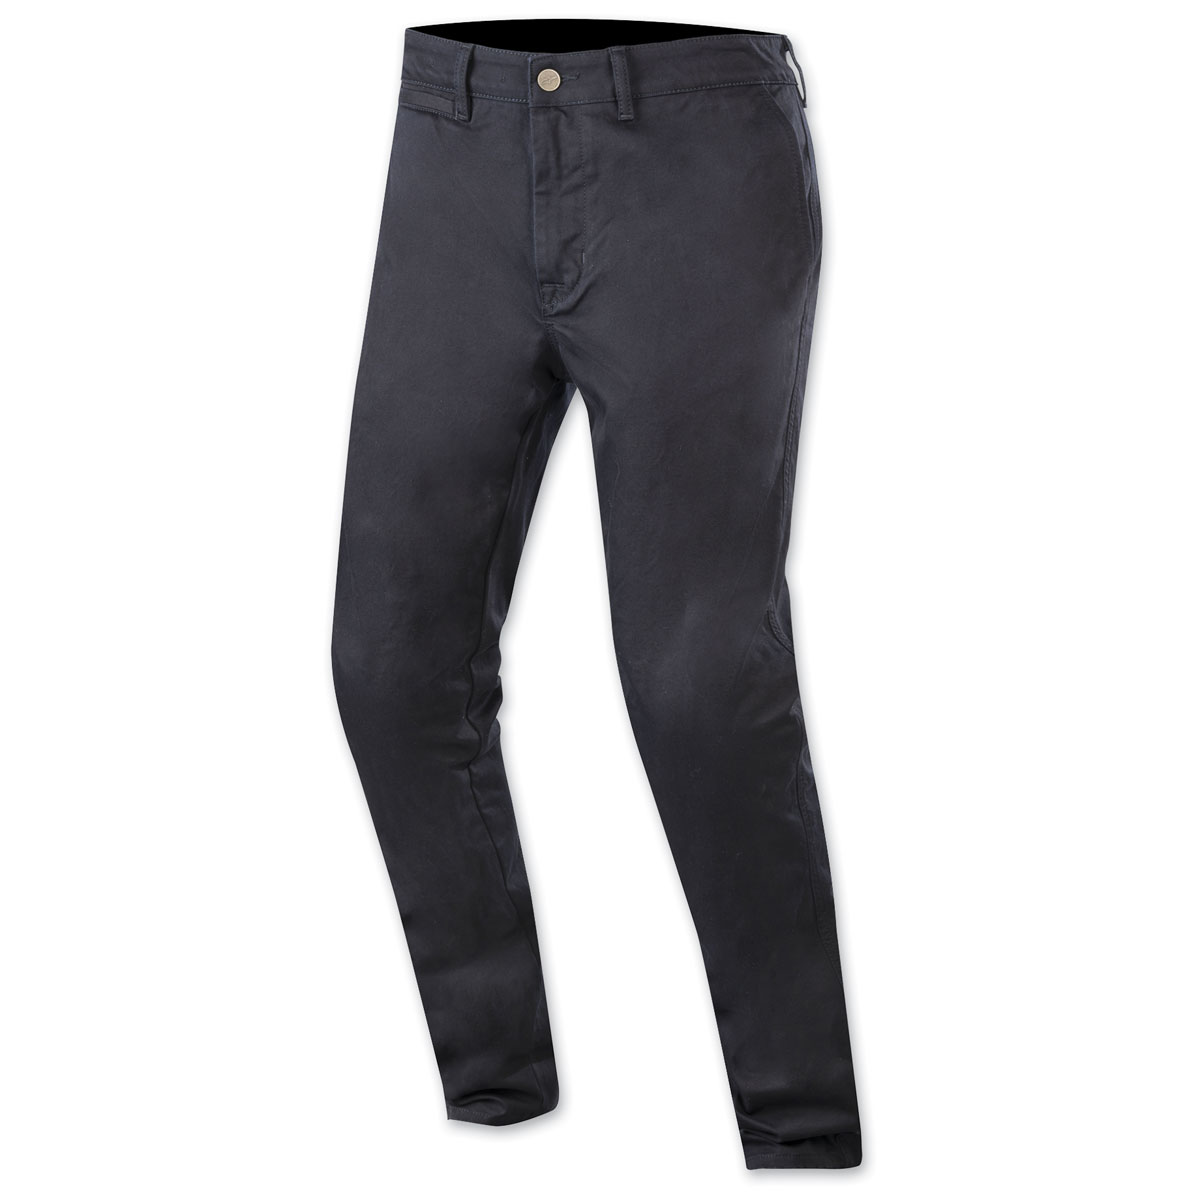 Alpinestars Men's Motochino Navy Blue Pants